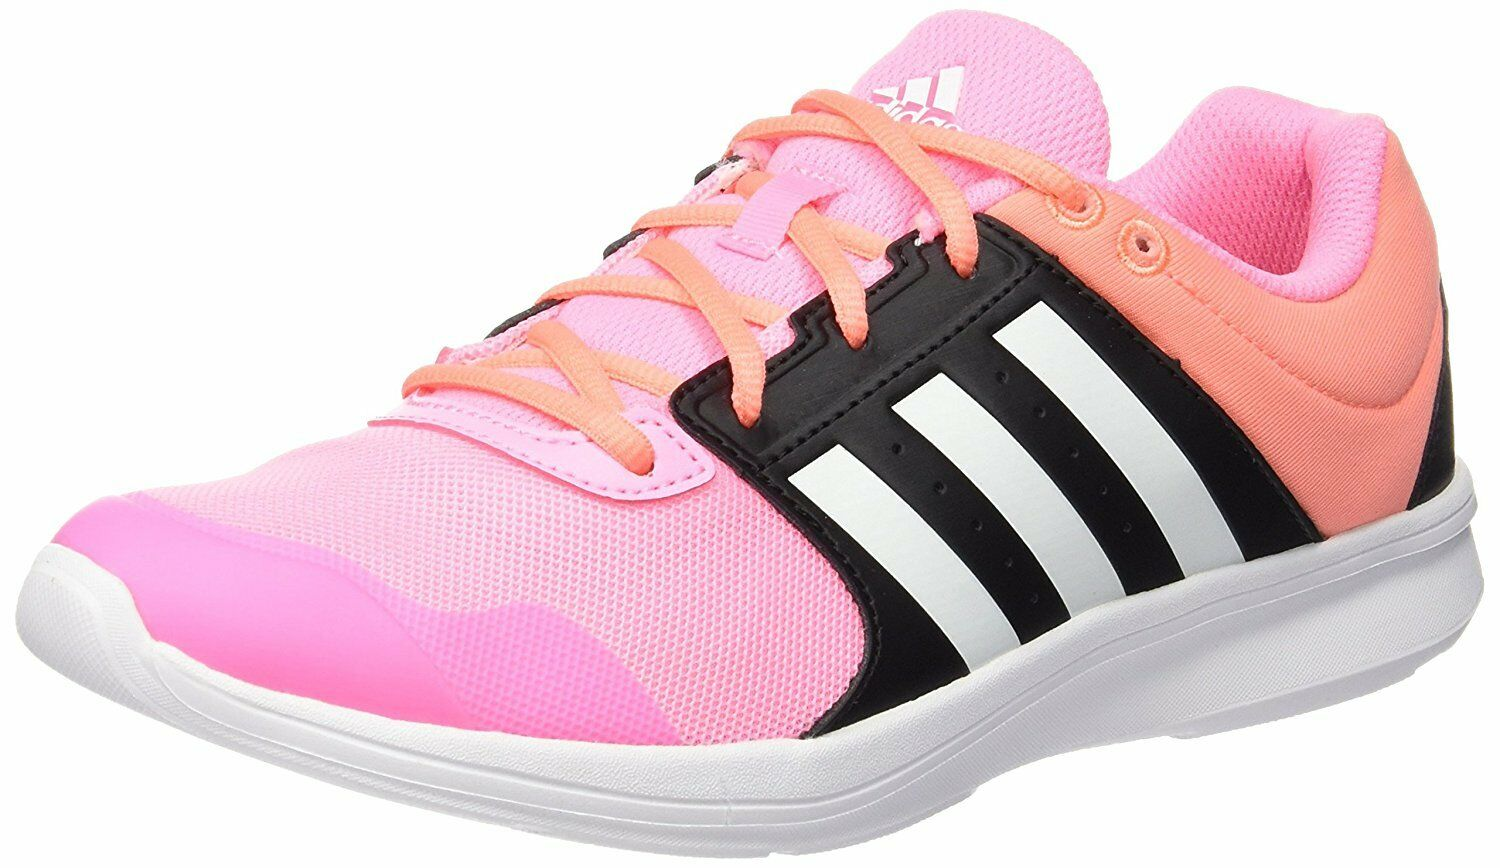 ADIDAS ESSENTIALS FUN 2 femmes chaussures LADIES GIRLS TRAINERS - AF5841